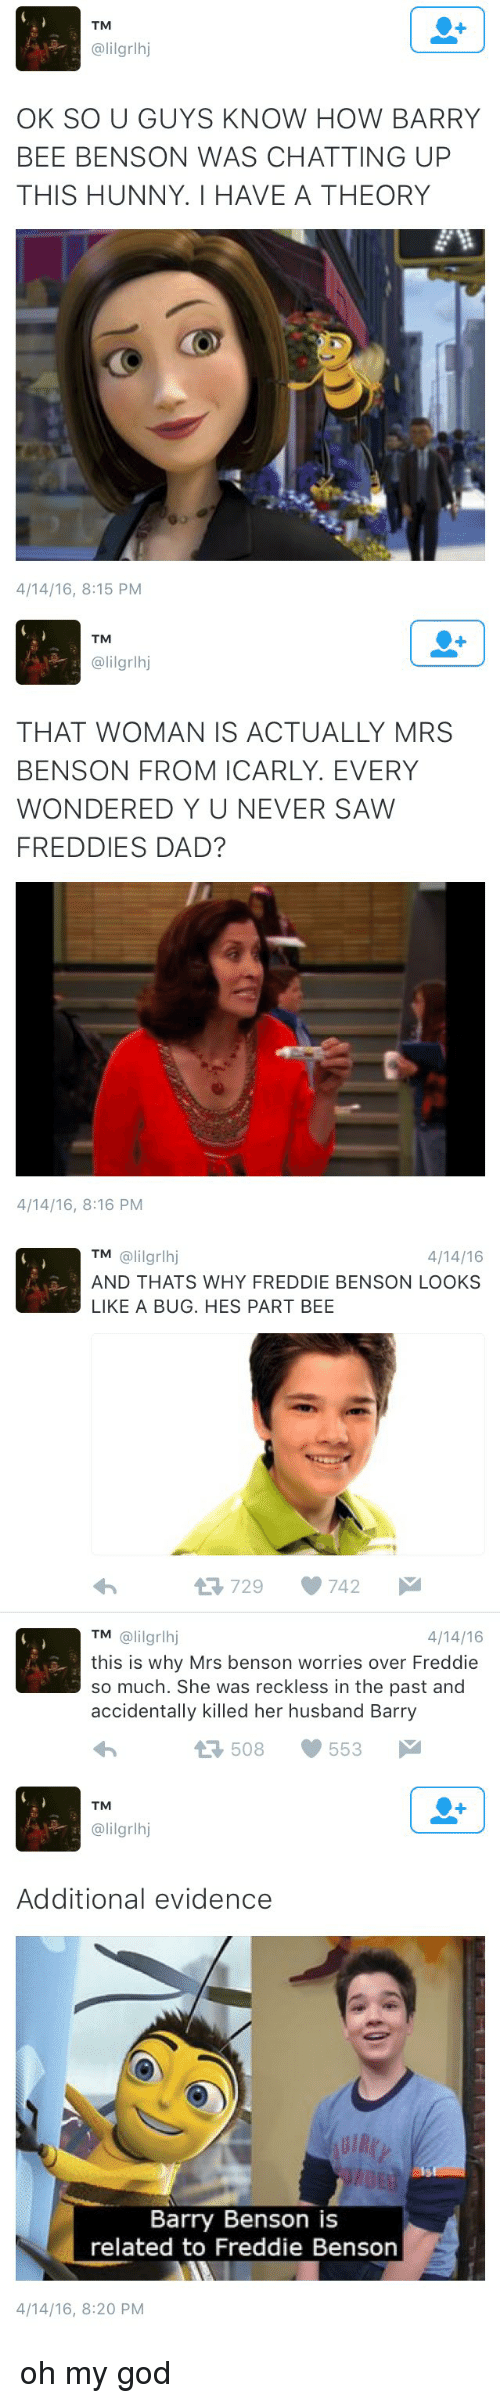 Funny: TM  @lil grlhj  OK SO U GUYS KNOW HOW BARRY  BEE BENSON WAS CHATTING UP  THIS HUNNY. HAVE A THEORY  4/14/16, 8:15 PM   TM  alilgrlhj  THAT WOMAN IS ACTUALLY MRS  BENSON FROM ICARLY. EVERY  WONDERED Y U NEVER SAW  FREDDIE DAD?  4/14/16, 8:16 PM   TM  (ali grlhj  4/14/16  AND THATS WHY FREDDIE BENSON LOOKS  LIKE A BUG. HES PART BEE  729 742  M  4/14/16  TM  @lil grlhj  this is why Mrs benson worries over Freddie  so much. She was reckless in the past and  accidentally killed her husband Barry  553  t 508   TM  alilgrlhj  Additional evidence  Barry Benson is  related to Freddie Benson  4/14/16, 8:20 PM oh my god